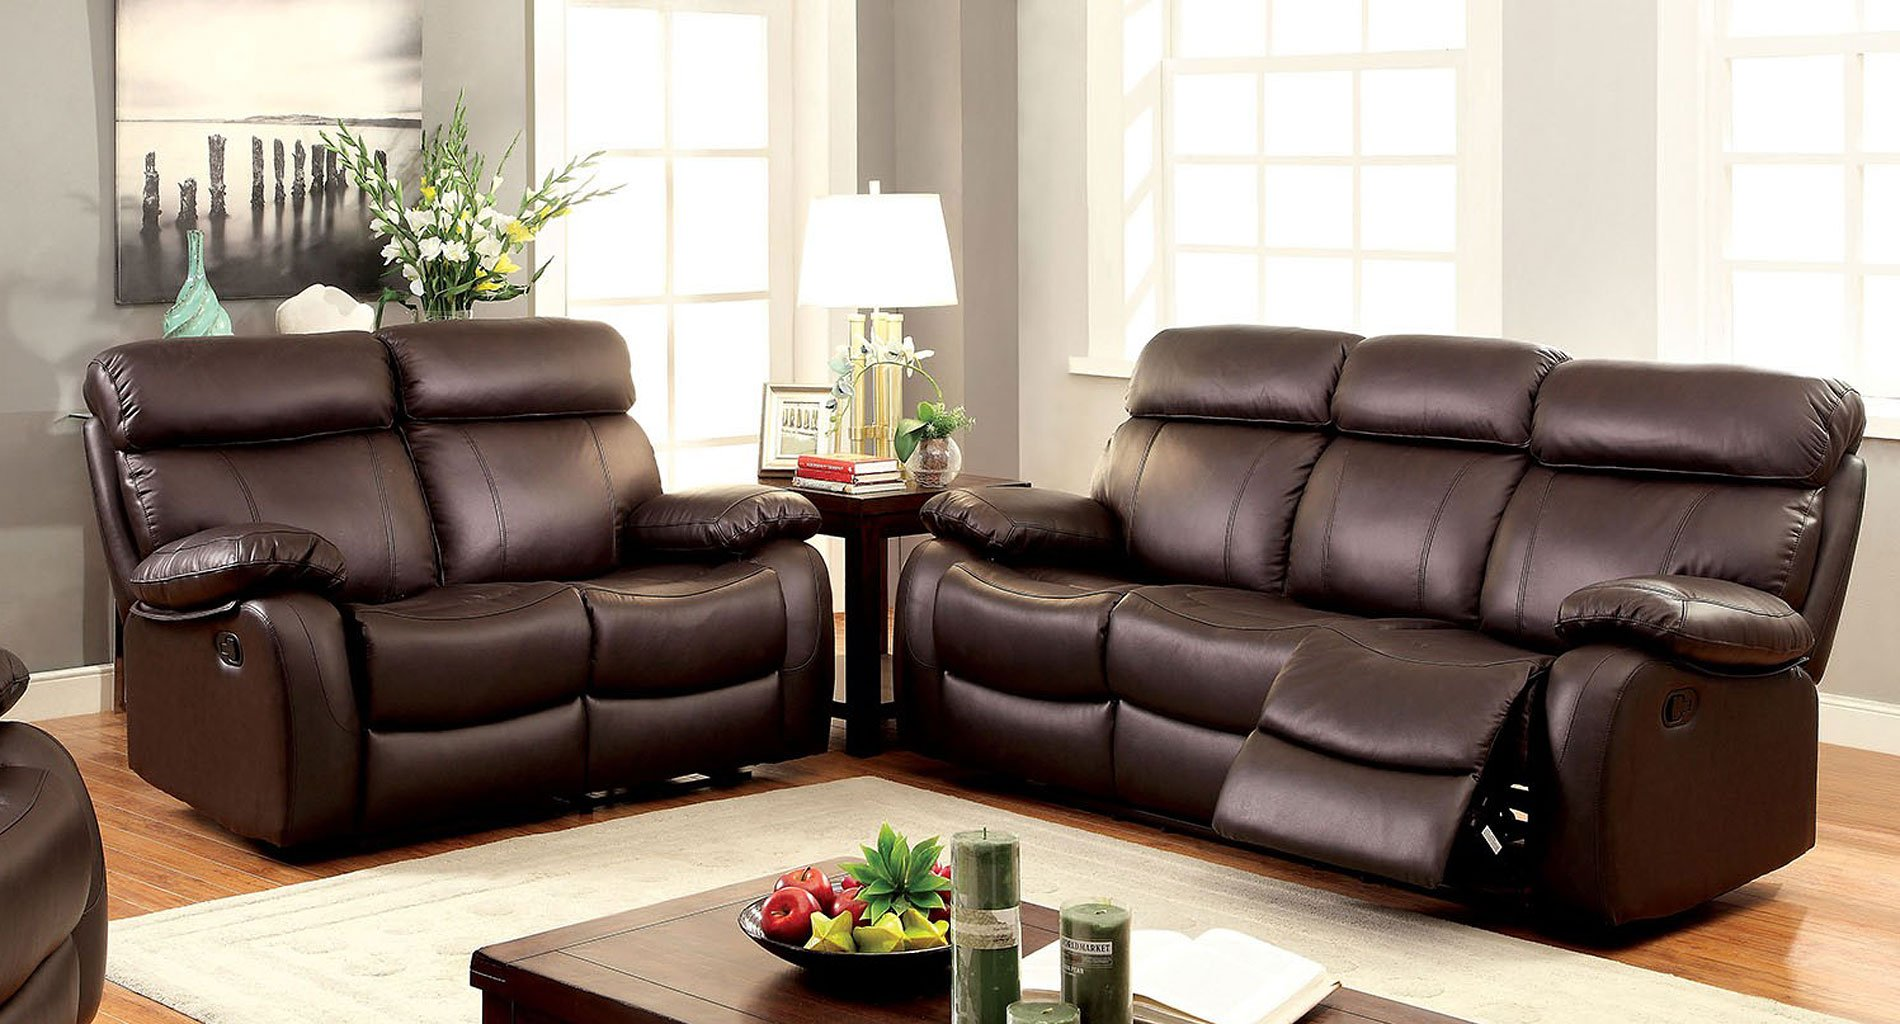 Myrtle reclining living room set living room sets for M s living room furniture